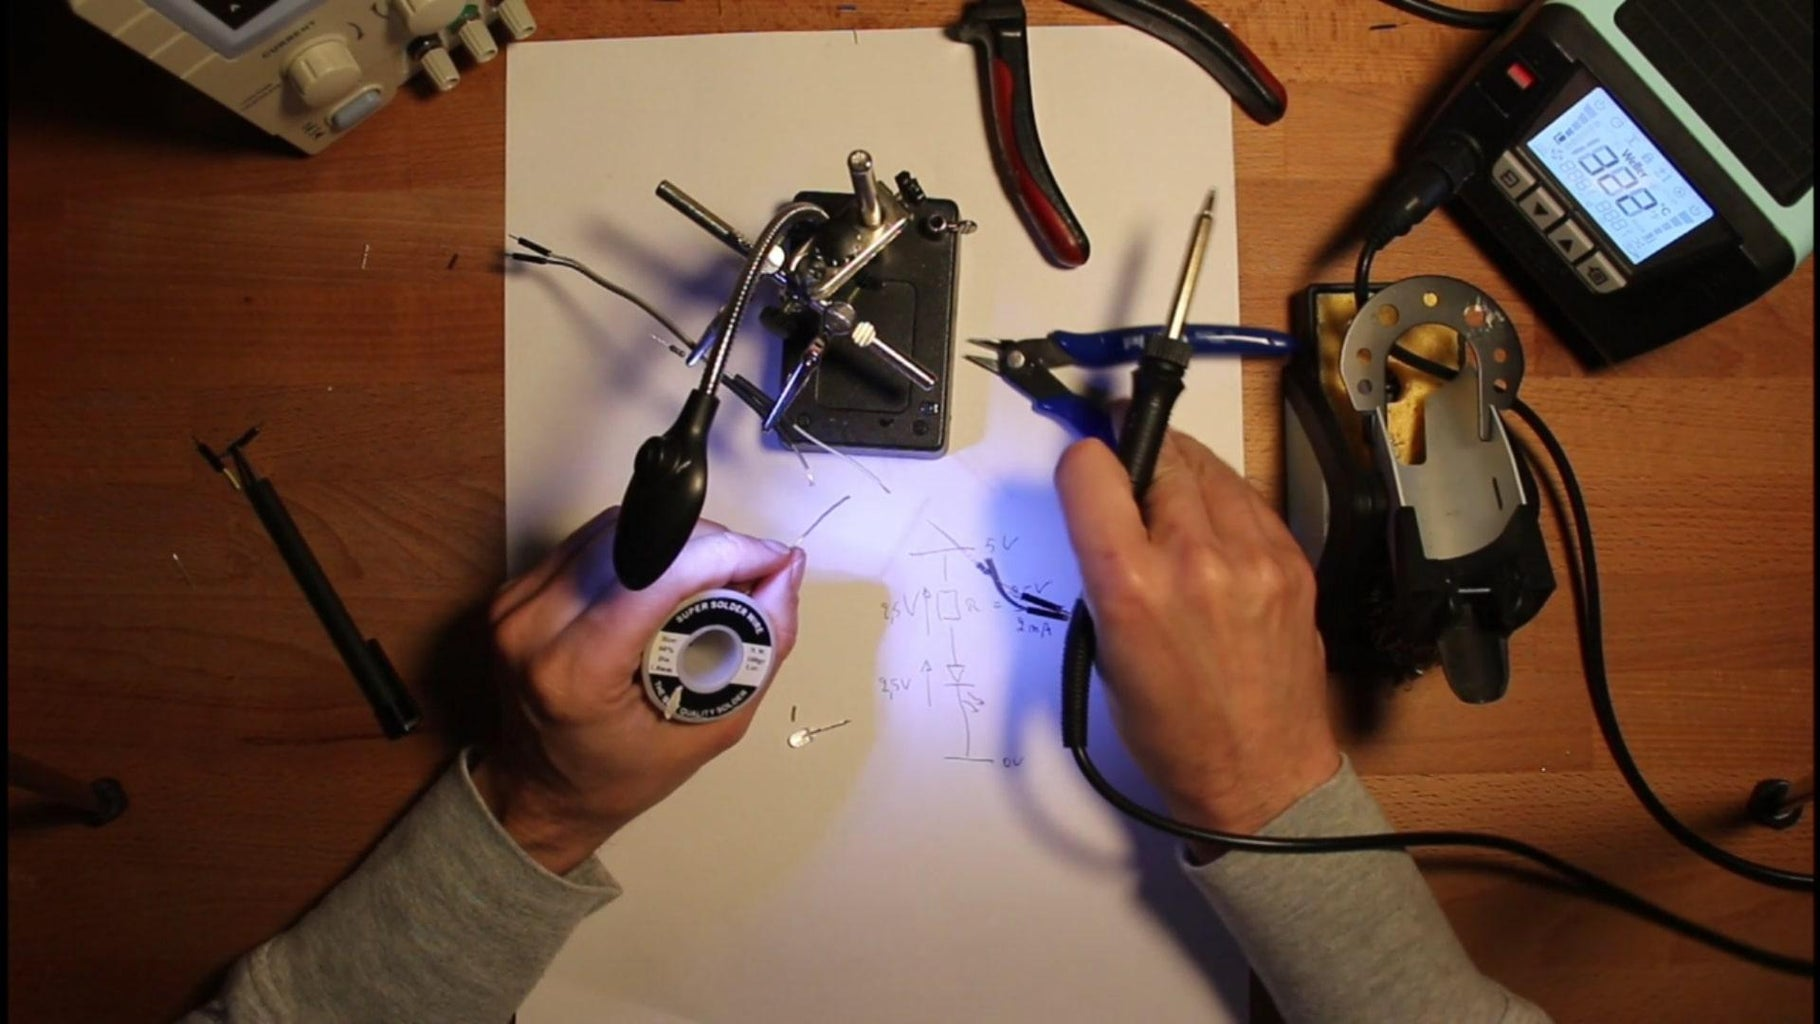 Assembly of LED Light Source With Series Resistor.